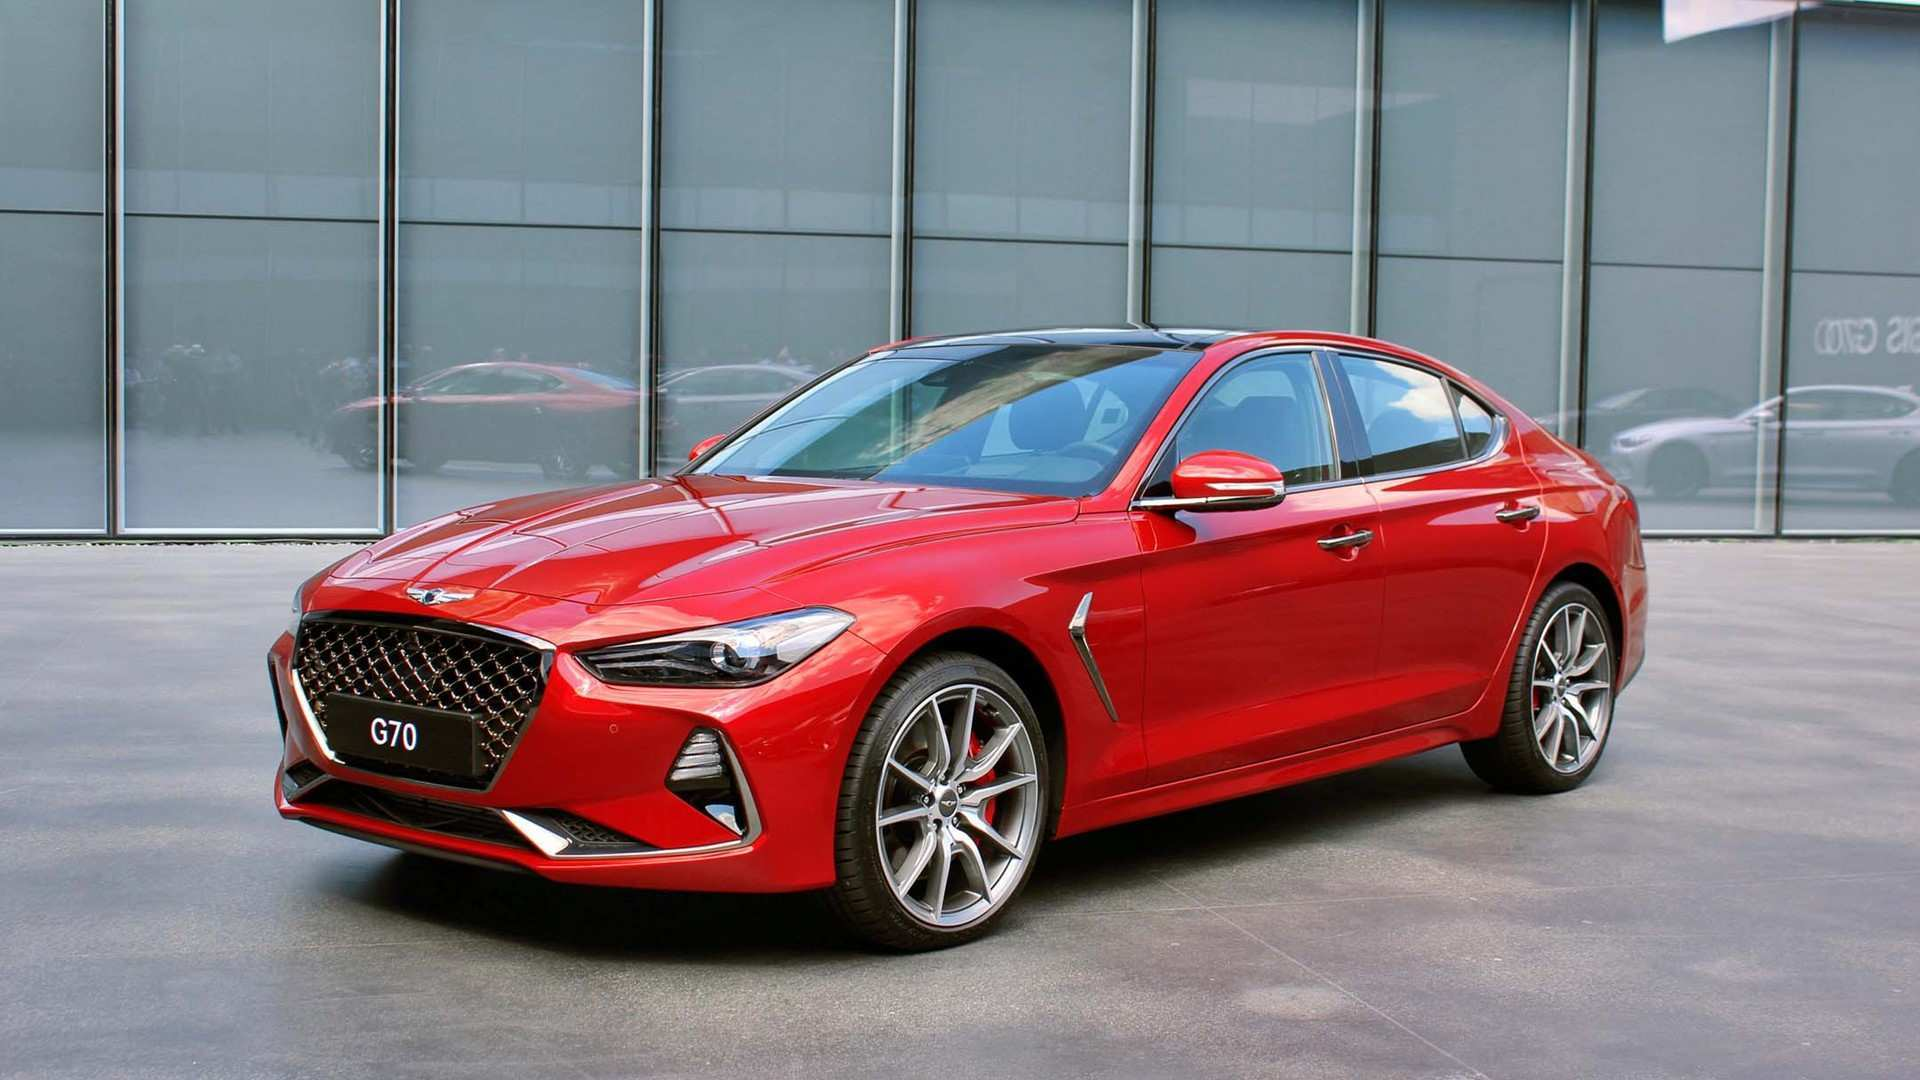 54 New 2019 Genesis G70 Price Exterior and Interior by 2019 Genesis G70 Price